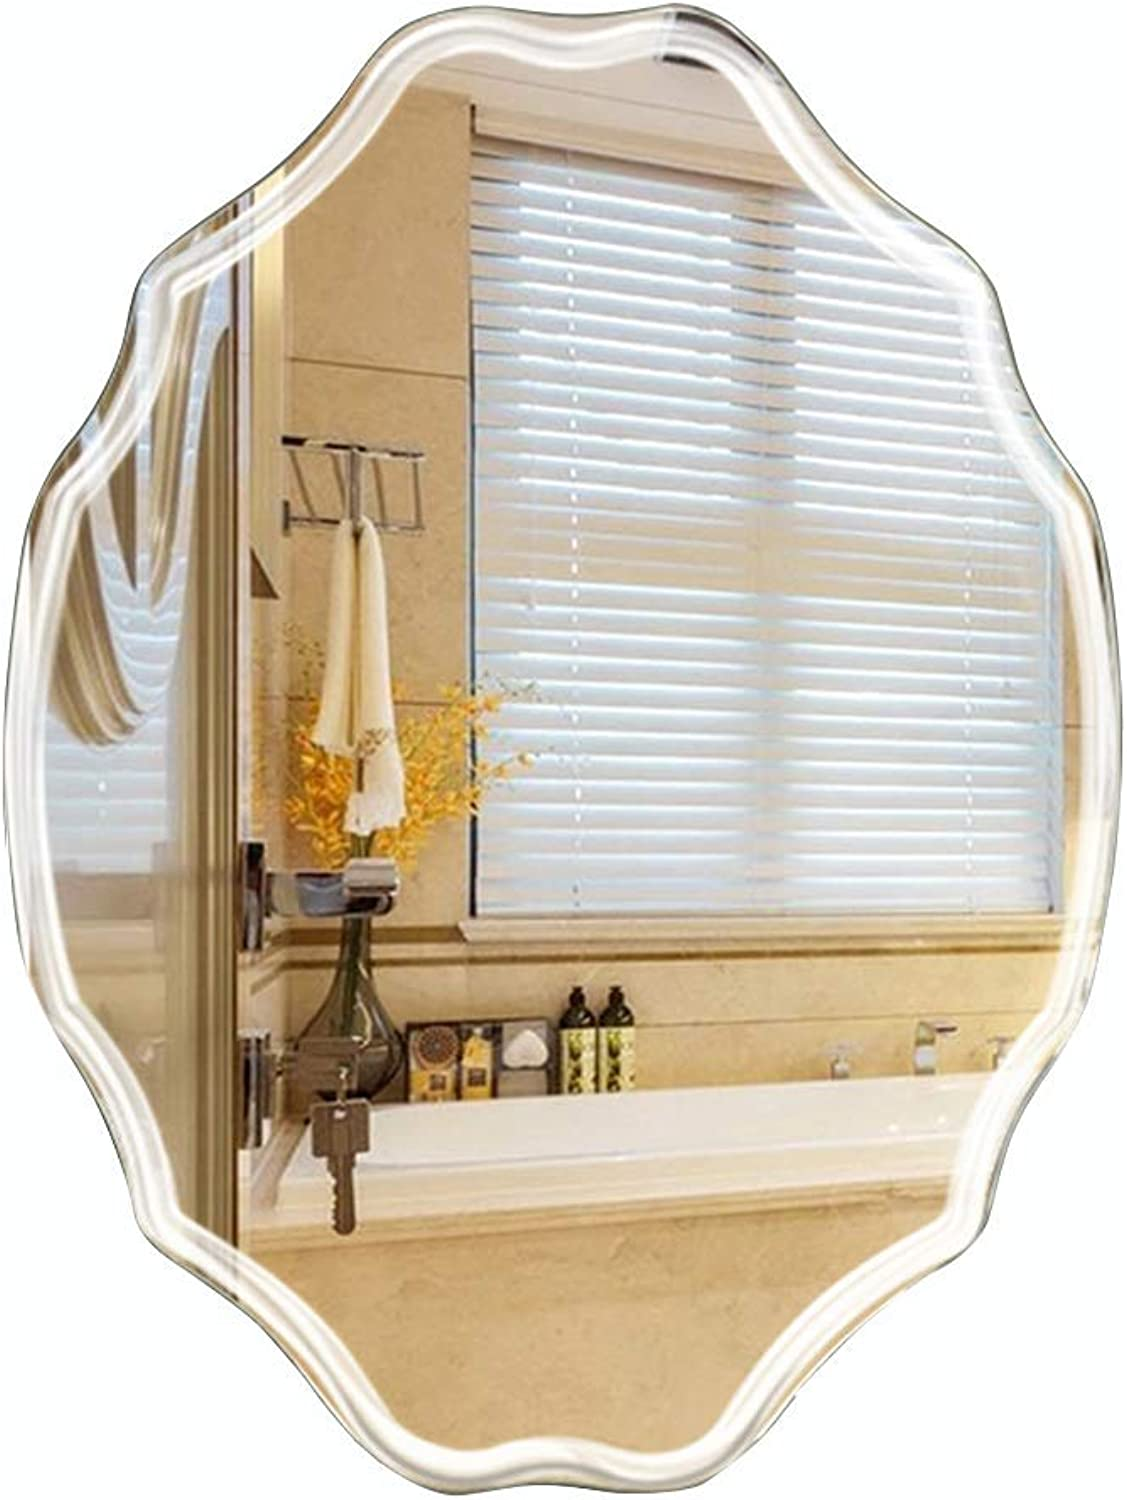 Bathroom mirror Frameless lace Wall Hanging Dressing Table Makeup mirror Hanging 5mm Bedroom Dressing mirror (Size   45  60cm)